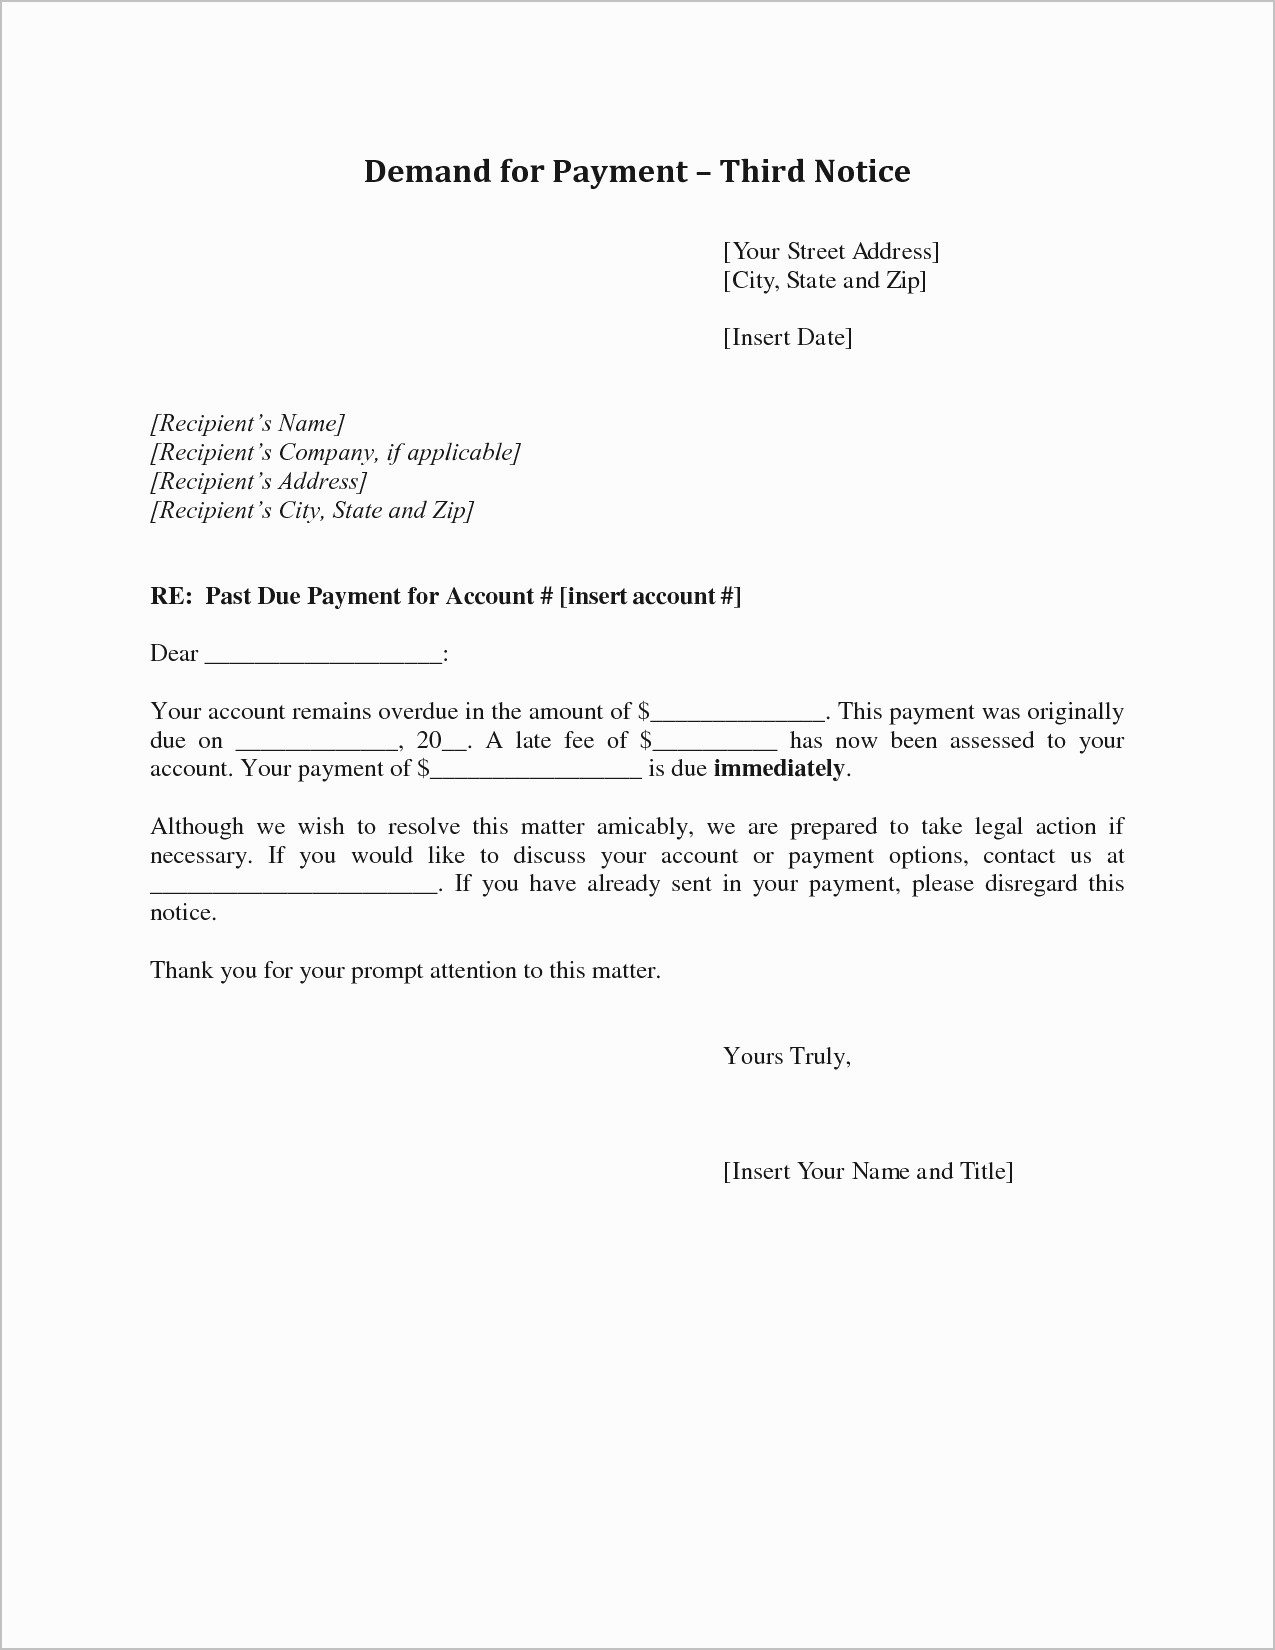 Rent Free Letter Template for Mortgage - Sample Demand Letter for Unpaid Rent Beautiful Letter Od Demand